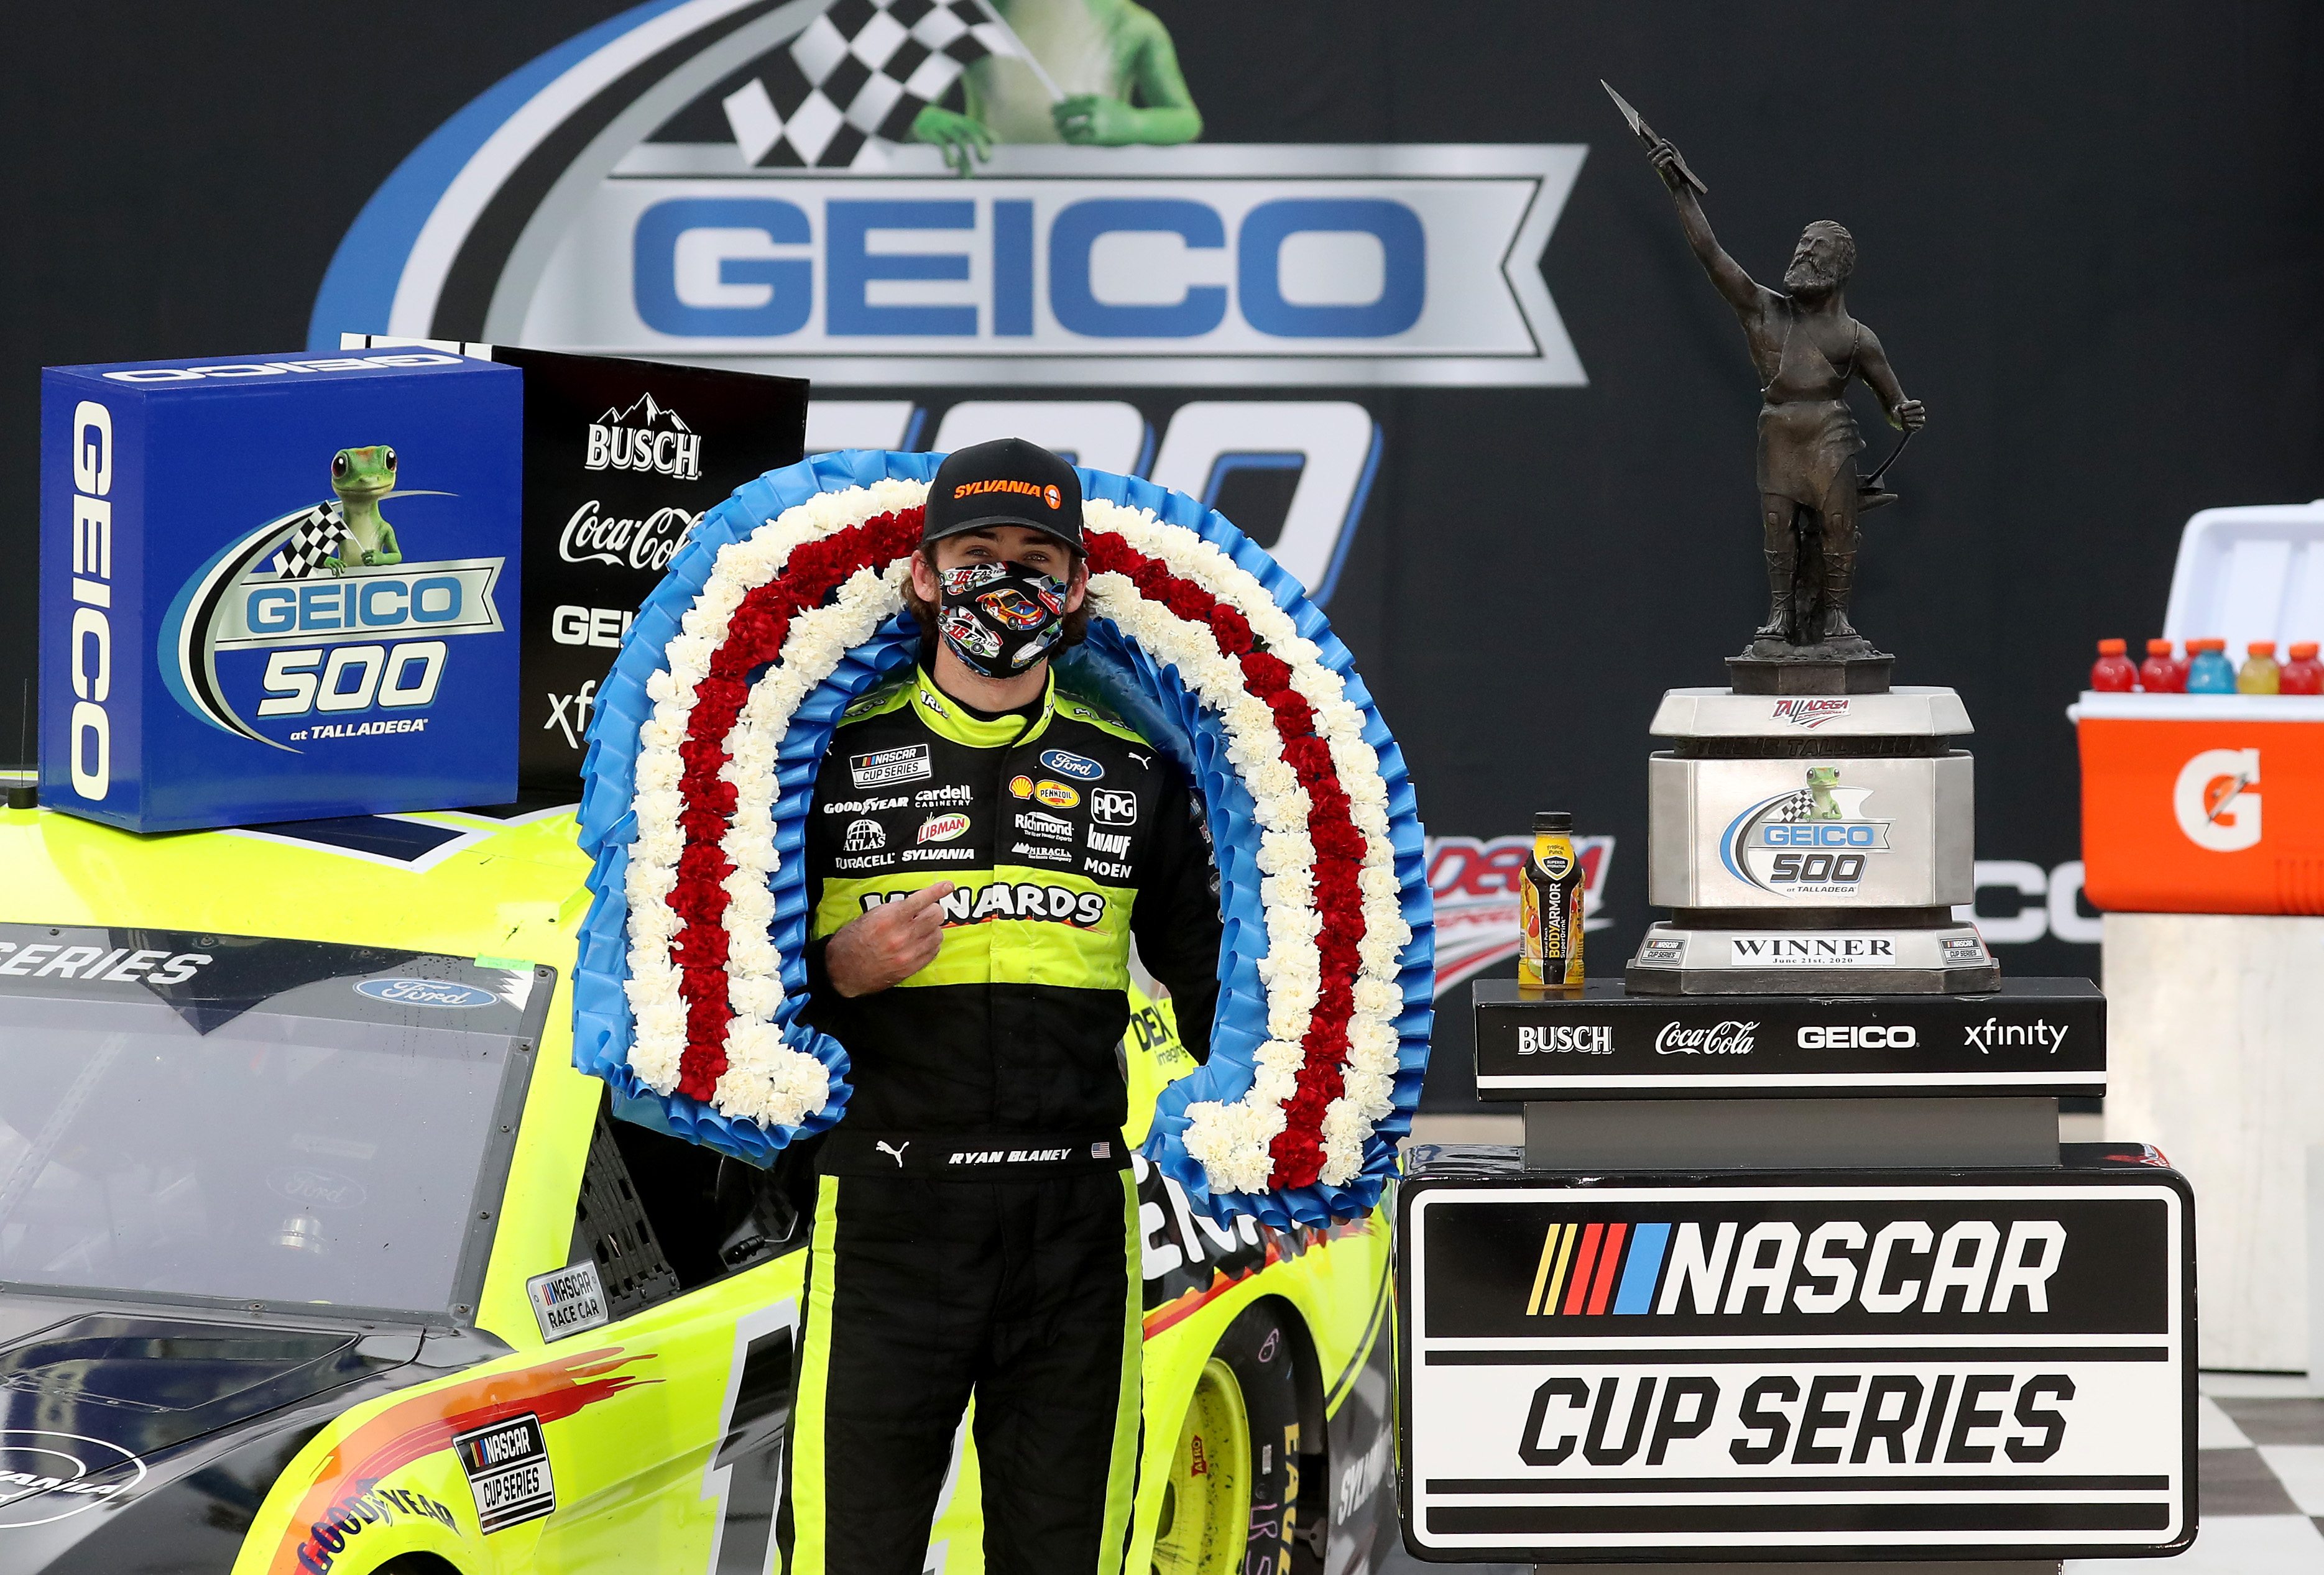 Menards/Sylvania Ford driver Ryan Blaney celebrates in Victory Lane after winning the NASCAR Cup Series GEICO 500